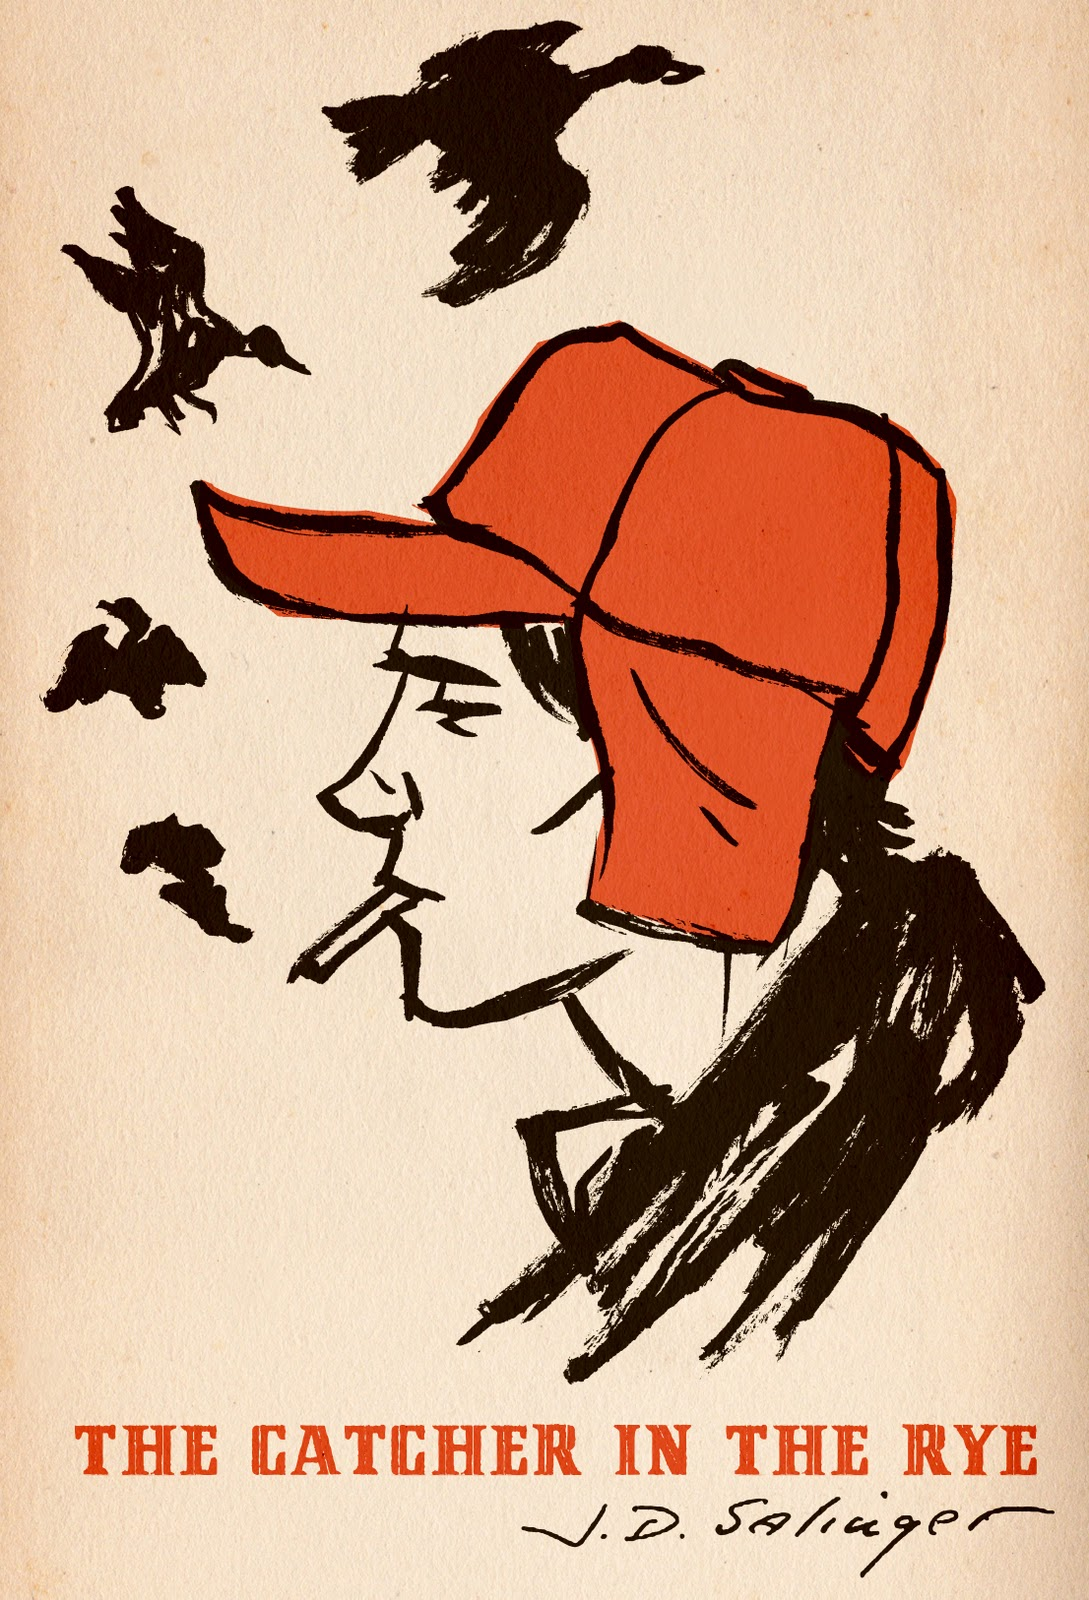 Catcher in the Rye, JD Salinger